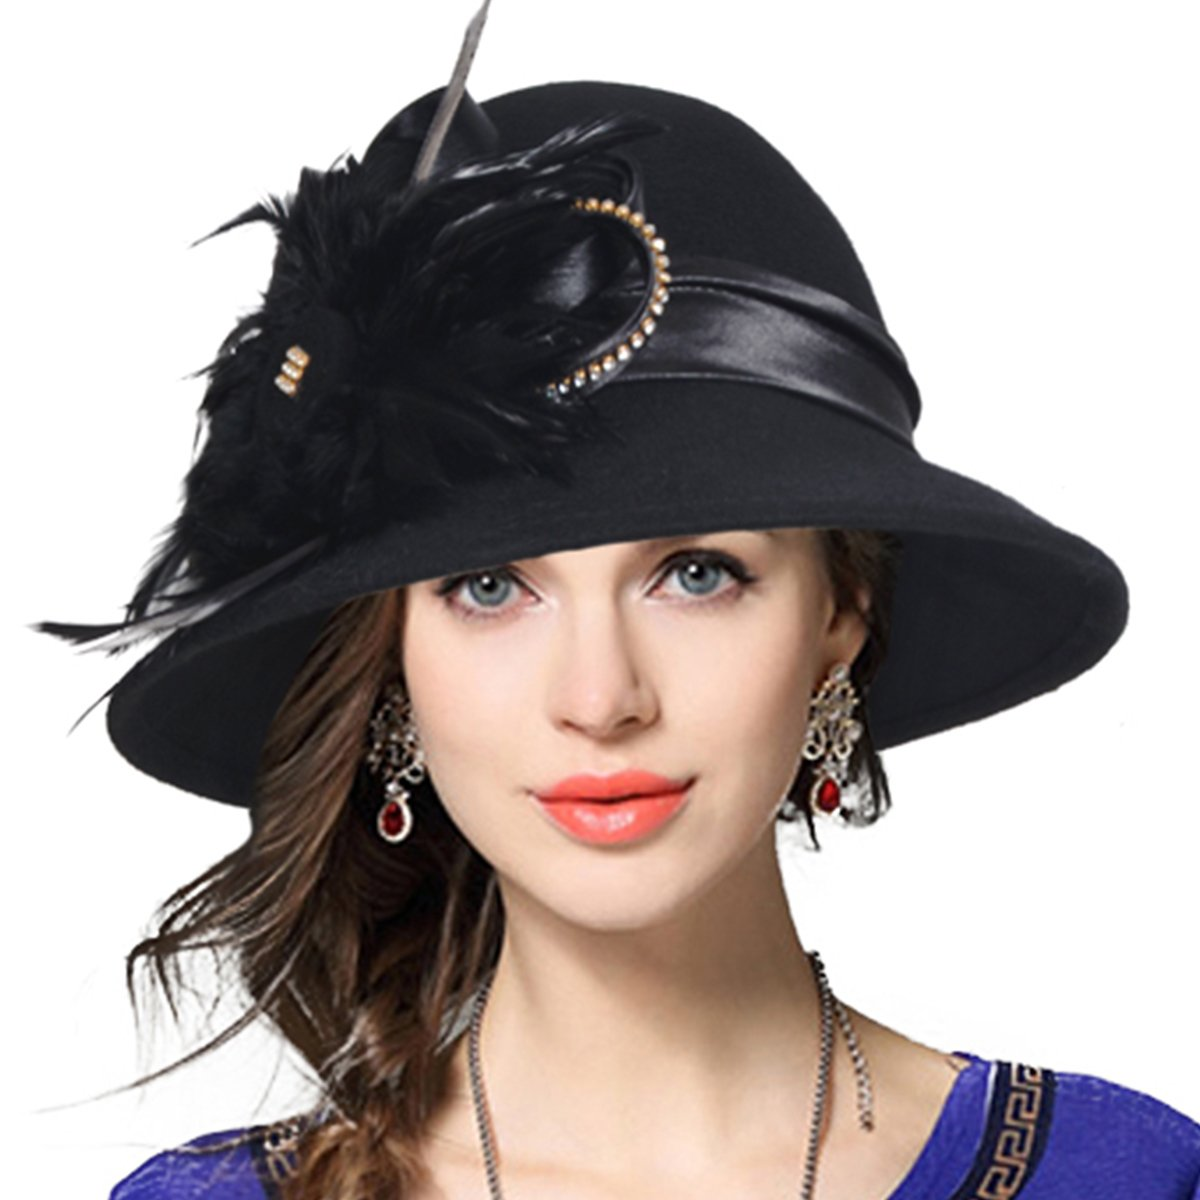 Downton Abbey Costumes Ideas Womens Wool Church Dress Cloche Hat Plumy Felt Bucket Winter Hat $30.99 AT vintagedancer.com